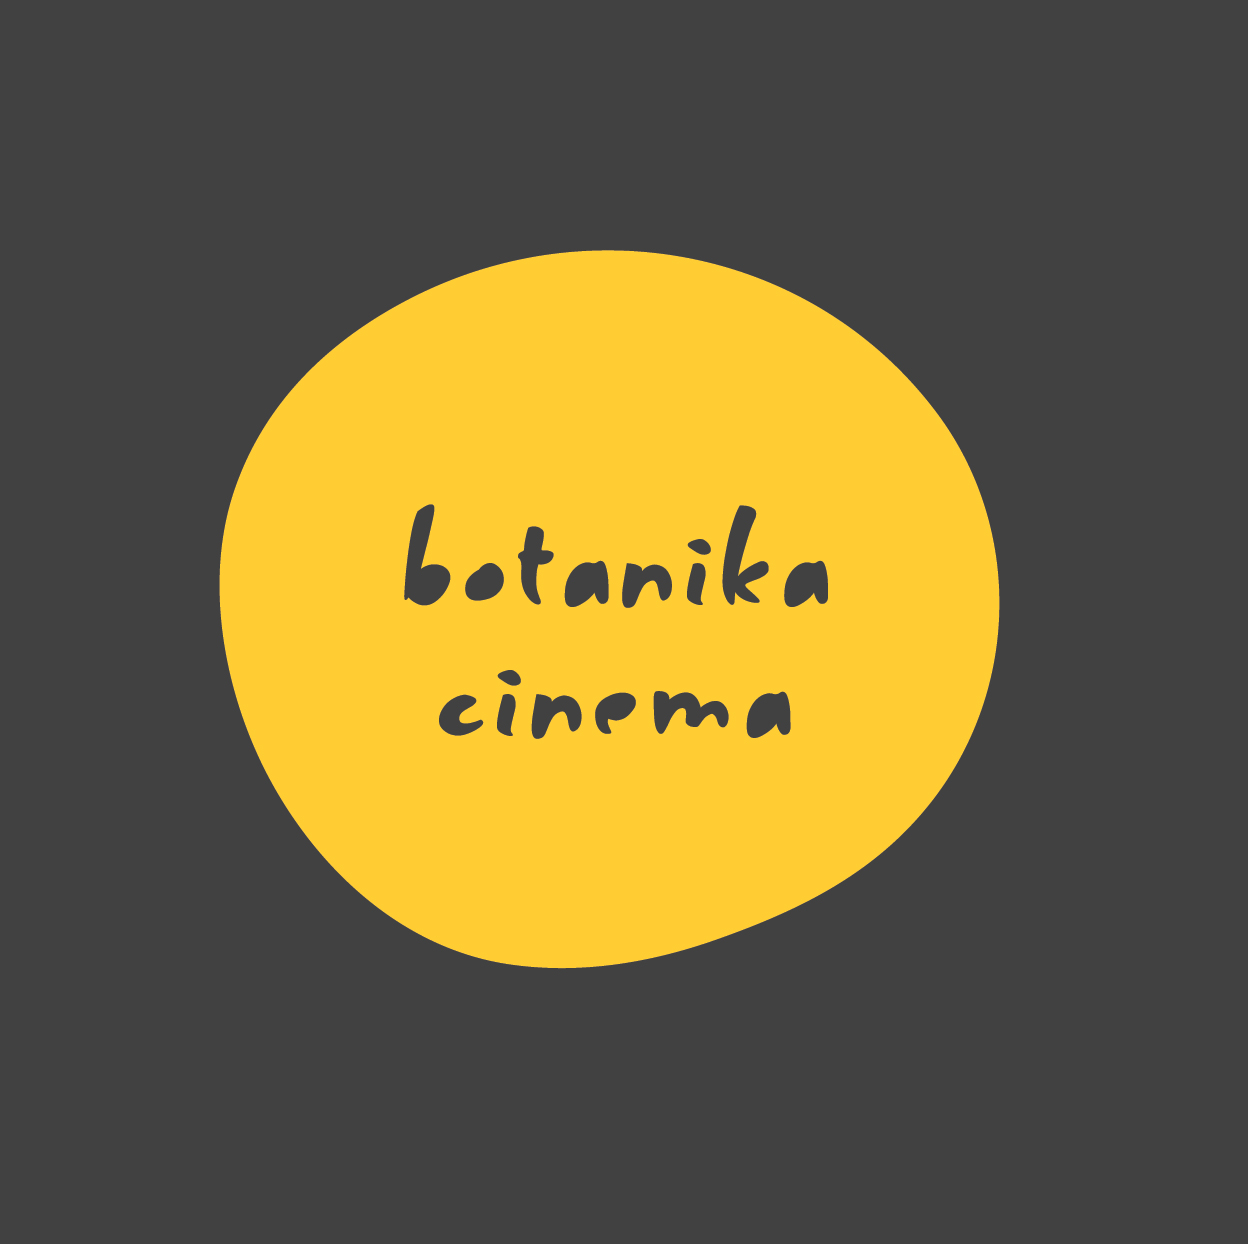 Botanika Cinema